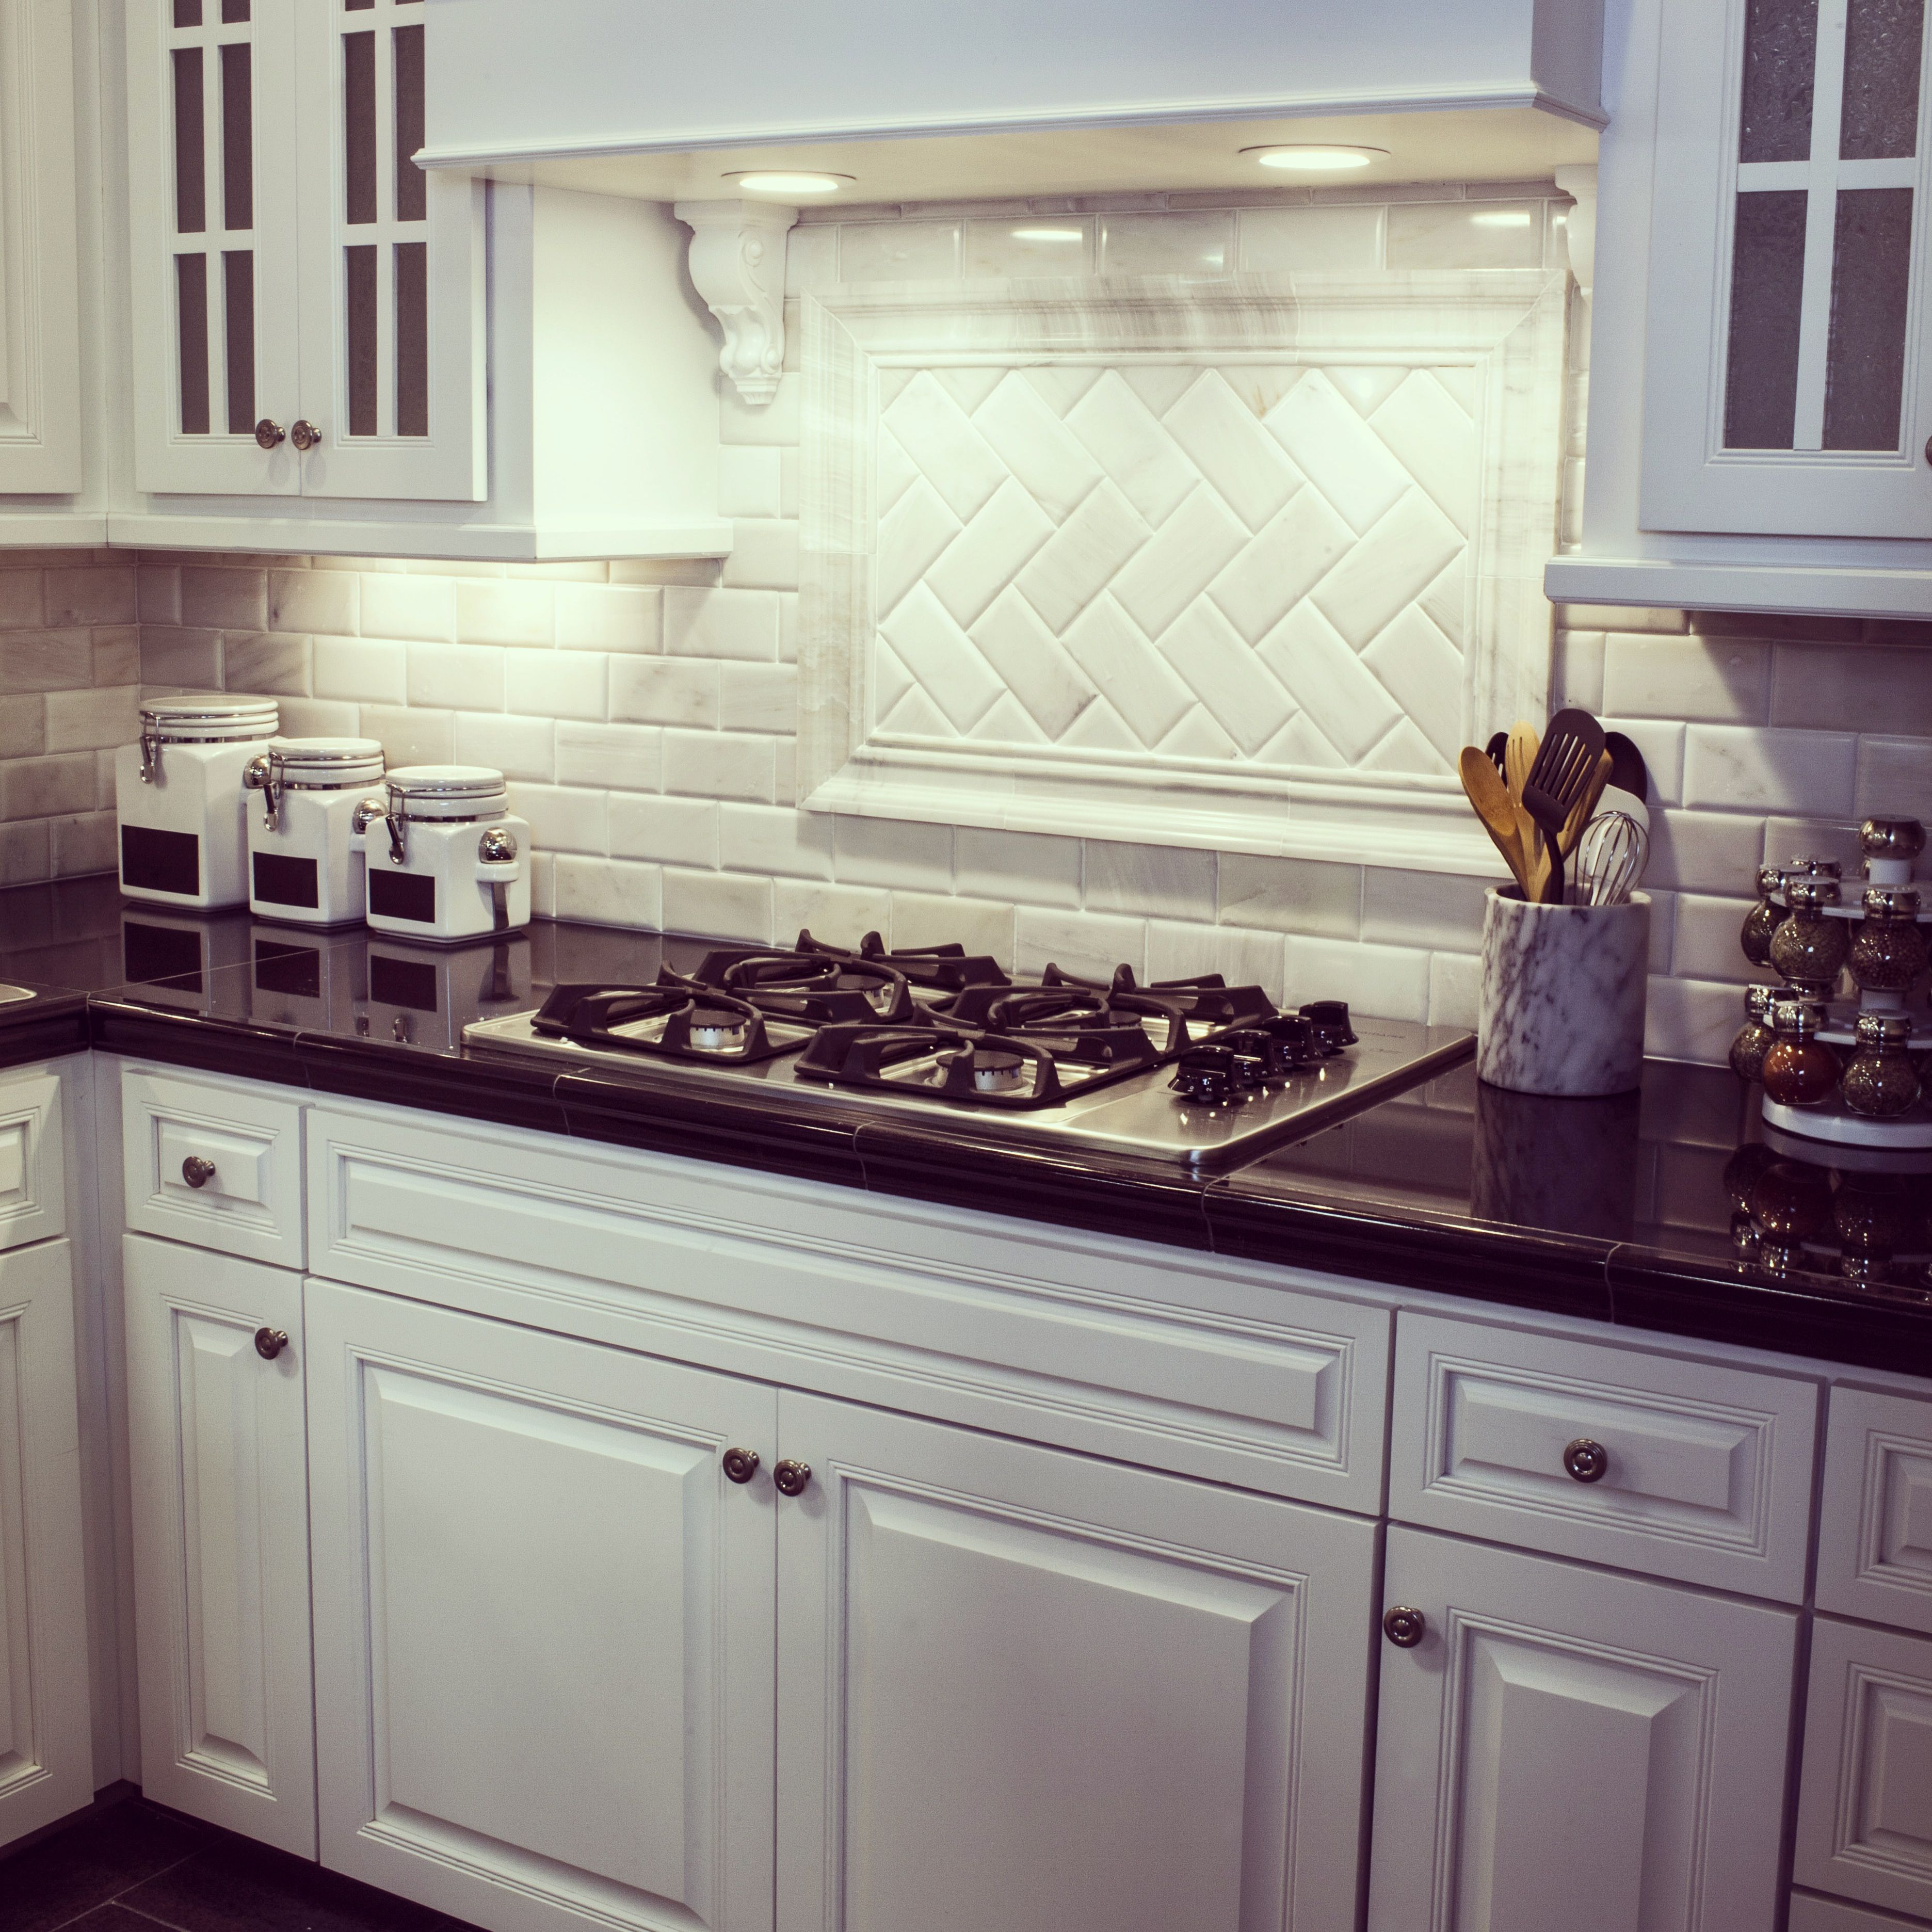 Traditional Kitchen Backsplash Ideas: A Traditional Design In The Kitchen: Carrara Subway Tile